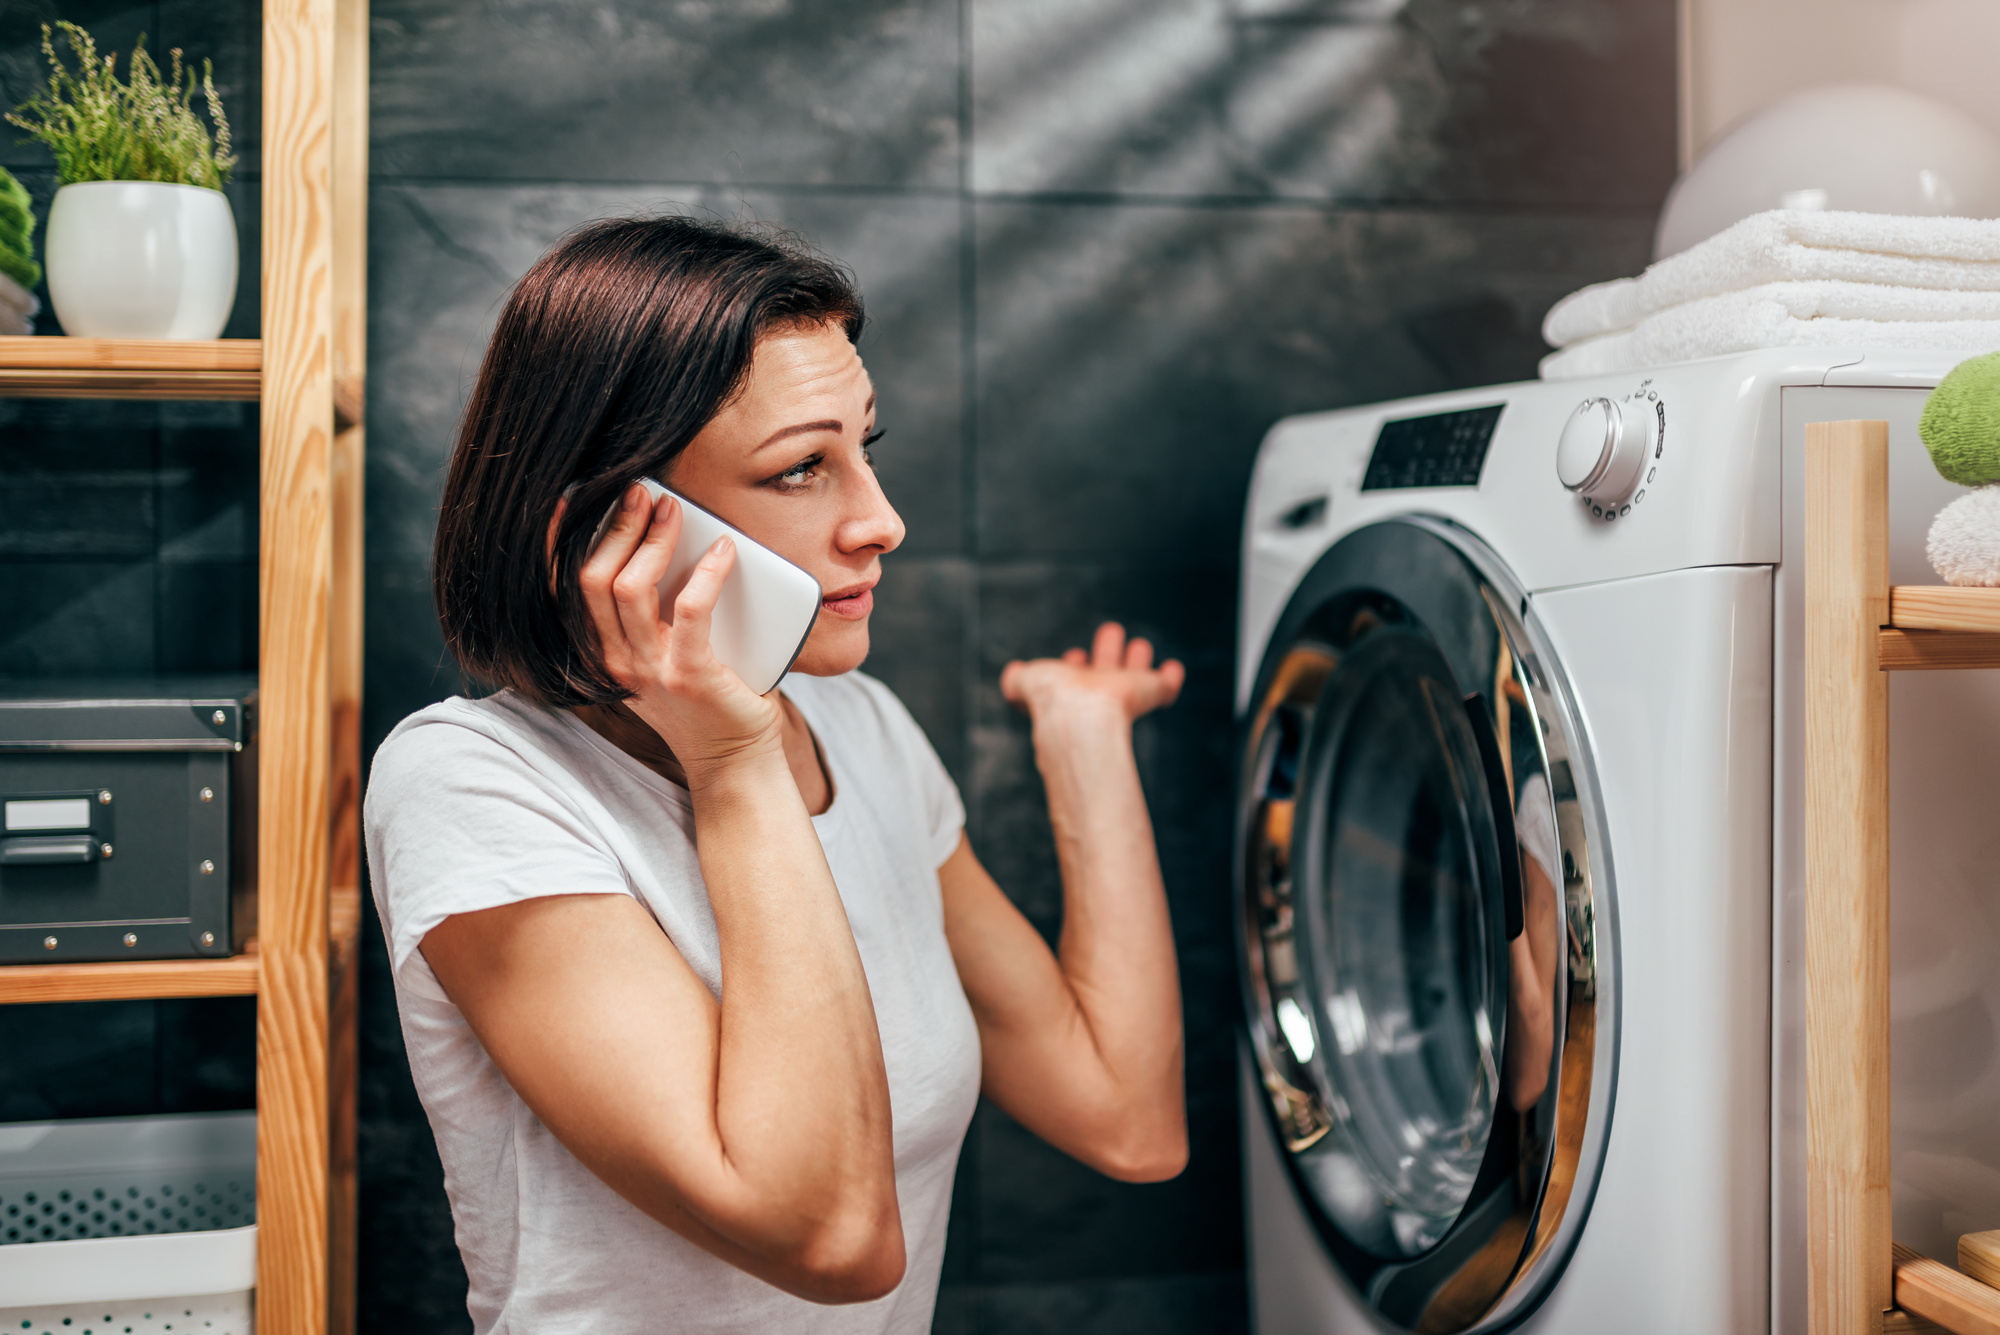 6 Common Dryer Problems That Require a Service Call - All